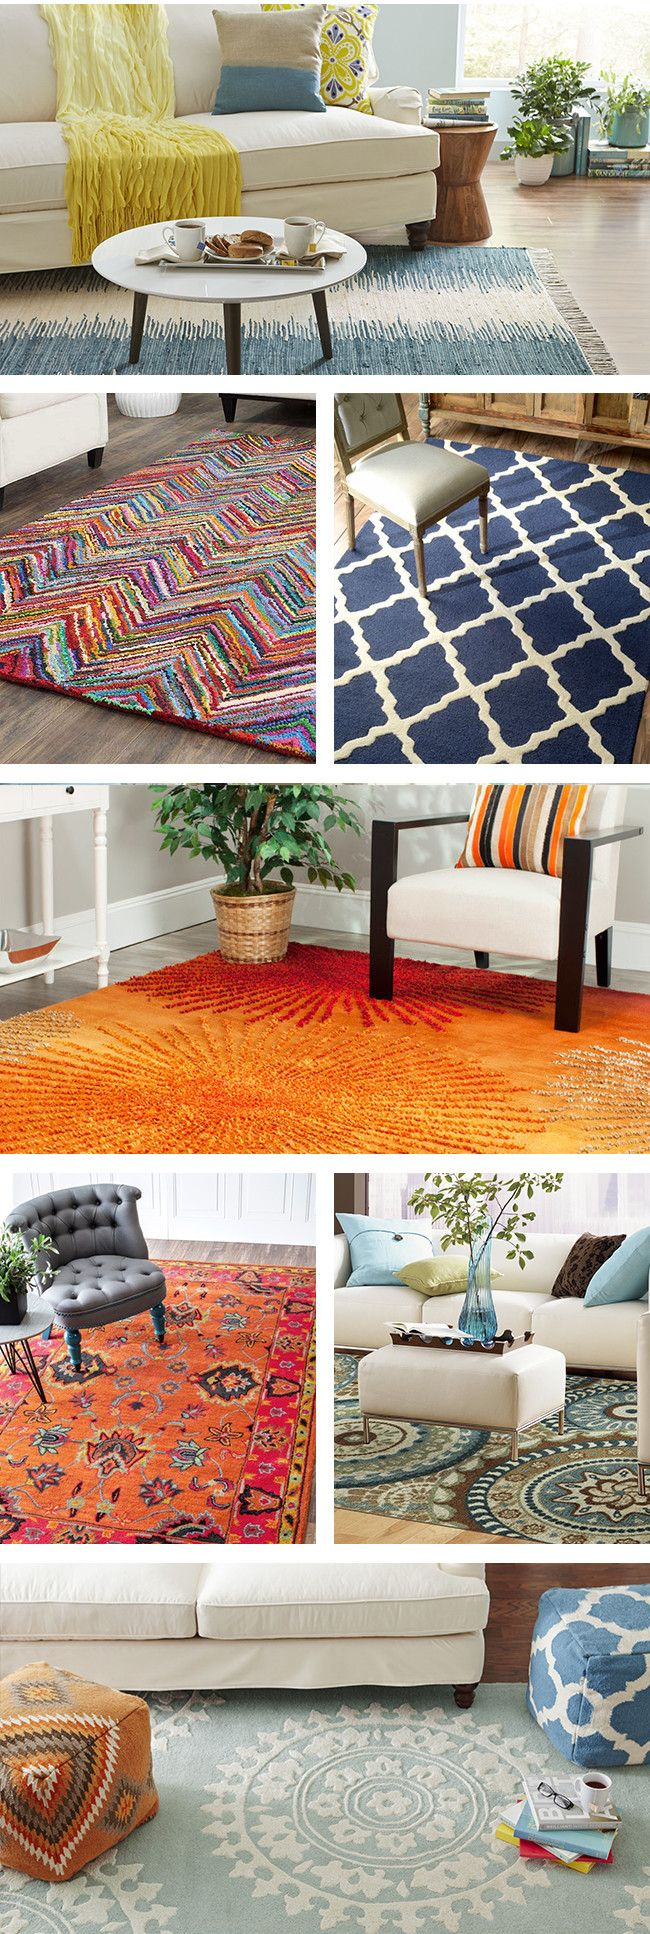 118 best area rug inspiration images on pinterest | architecture